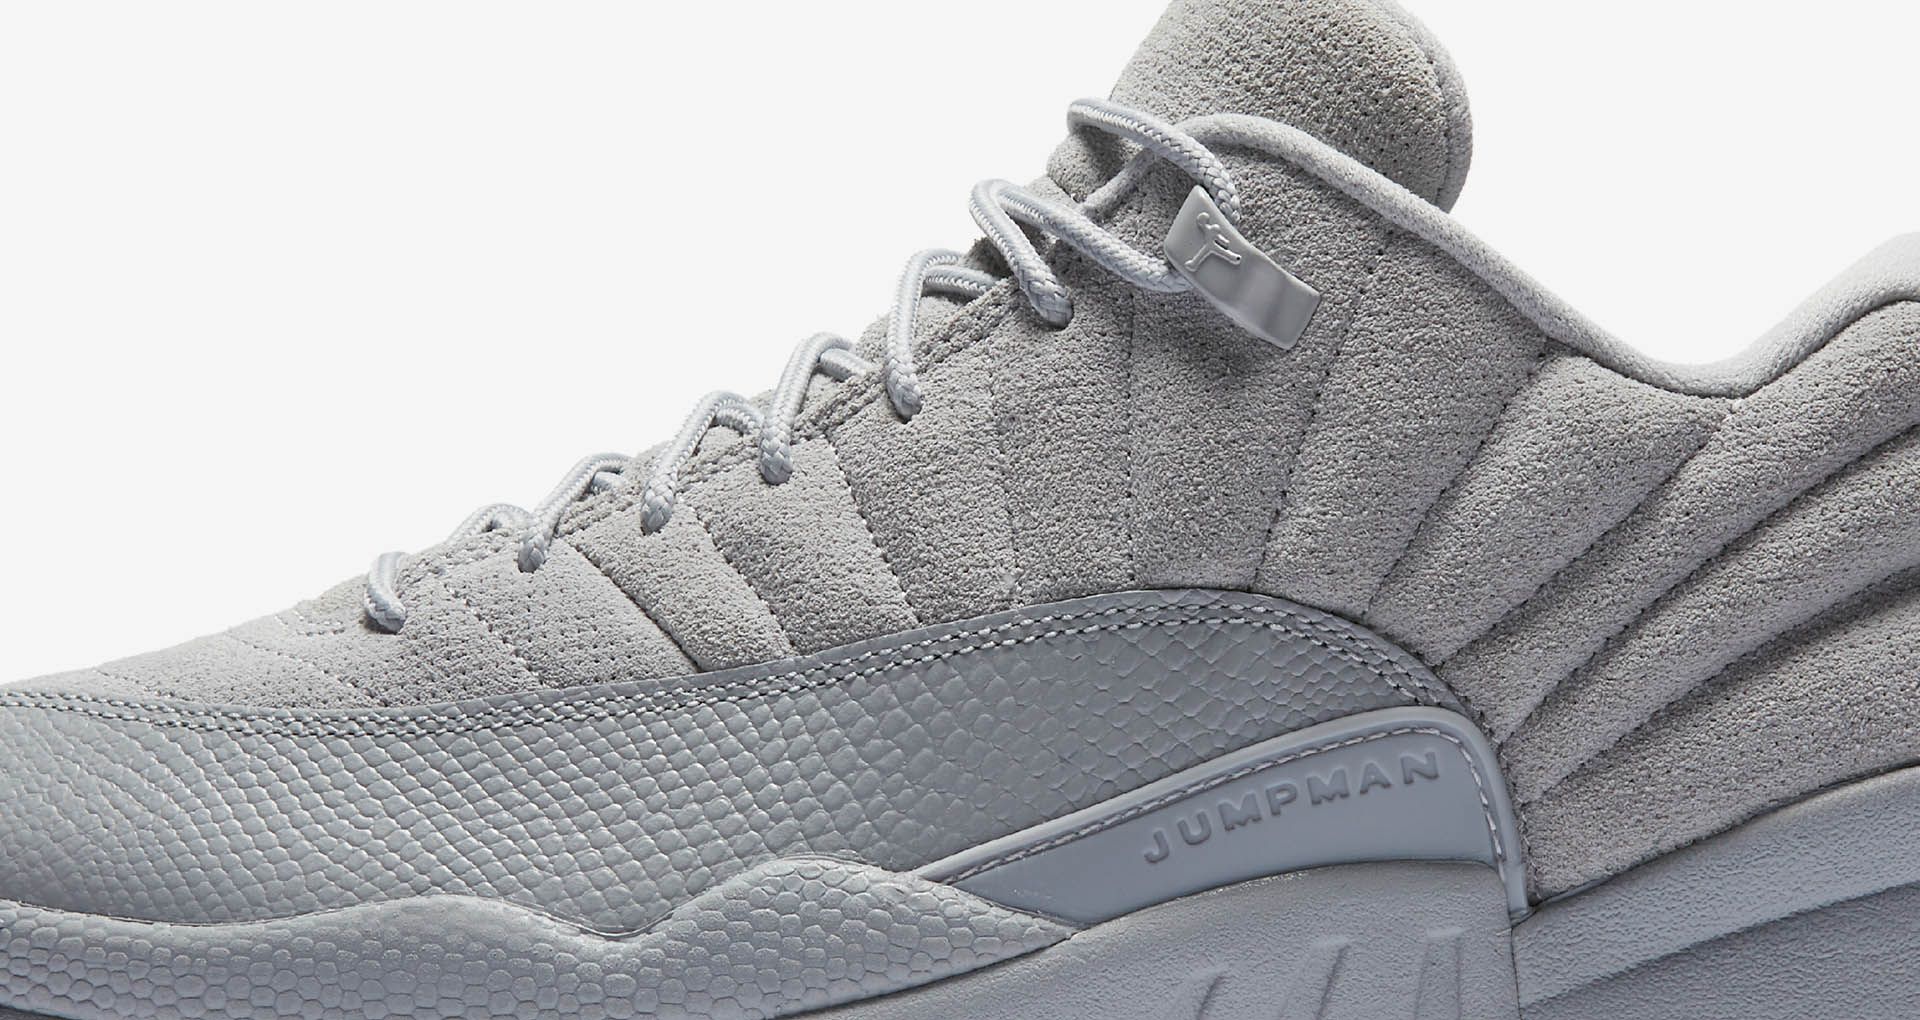 finest selection 4fe87 f5756 A tonal Wolf Grey colorway highlights the distinctive design lines and  balance of textures that made the Air Jordan XII a favorite.